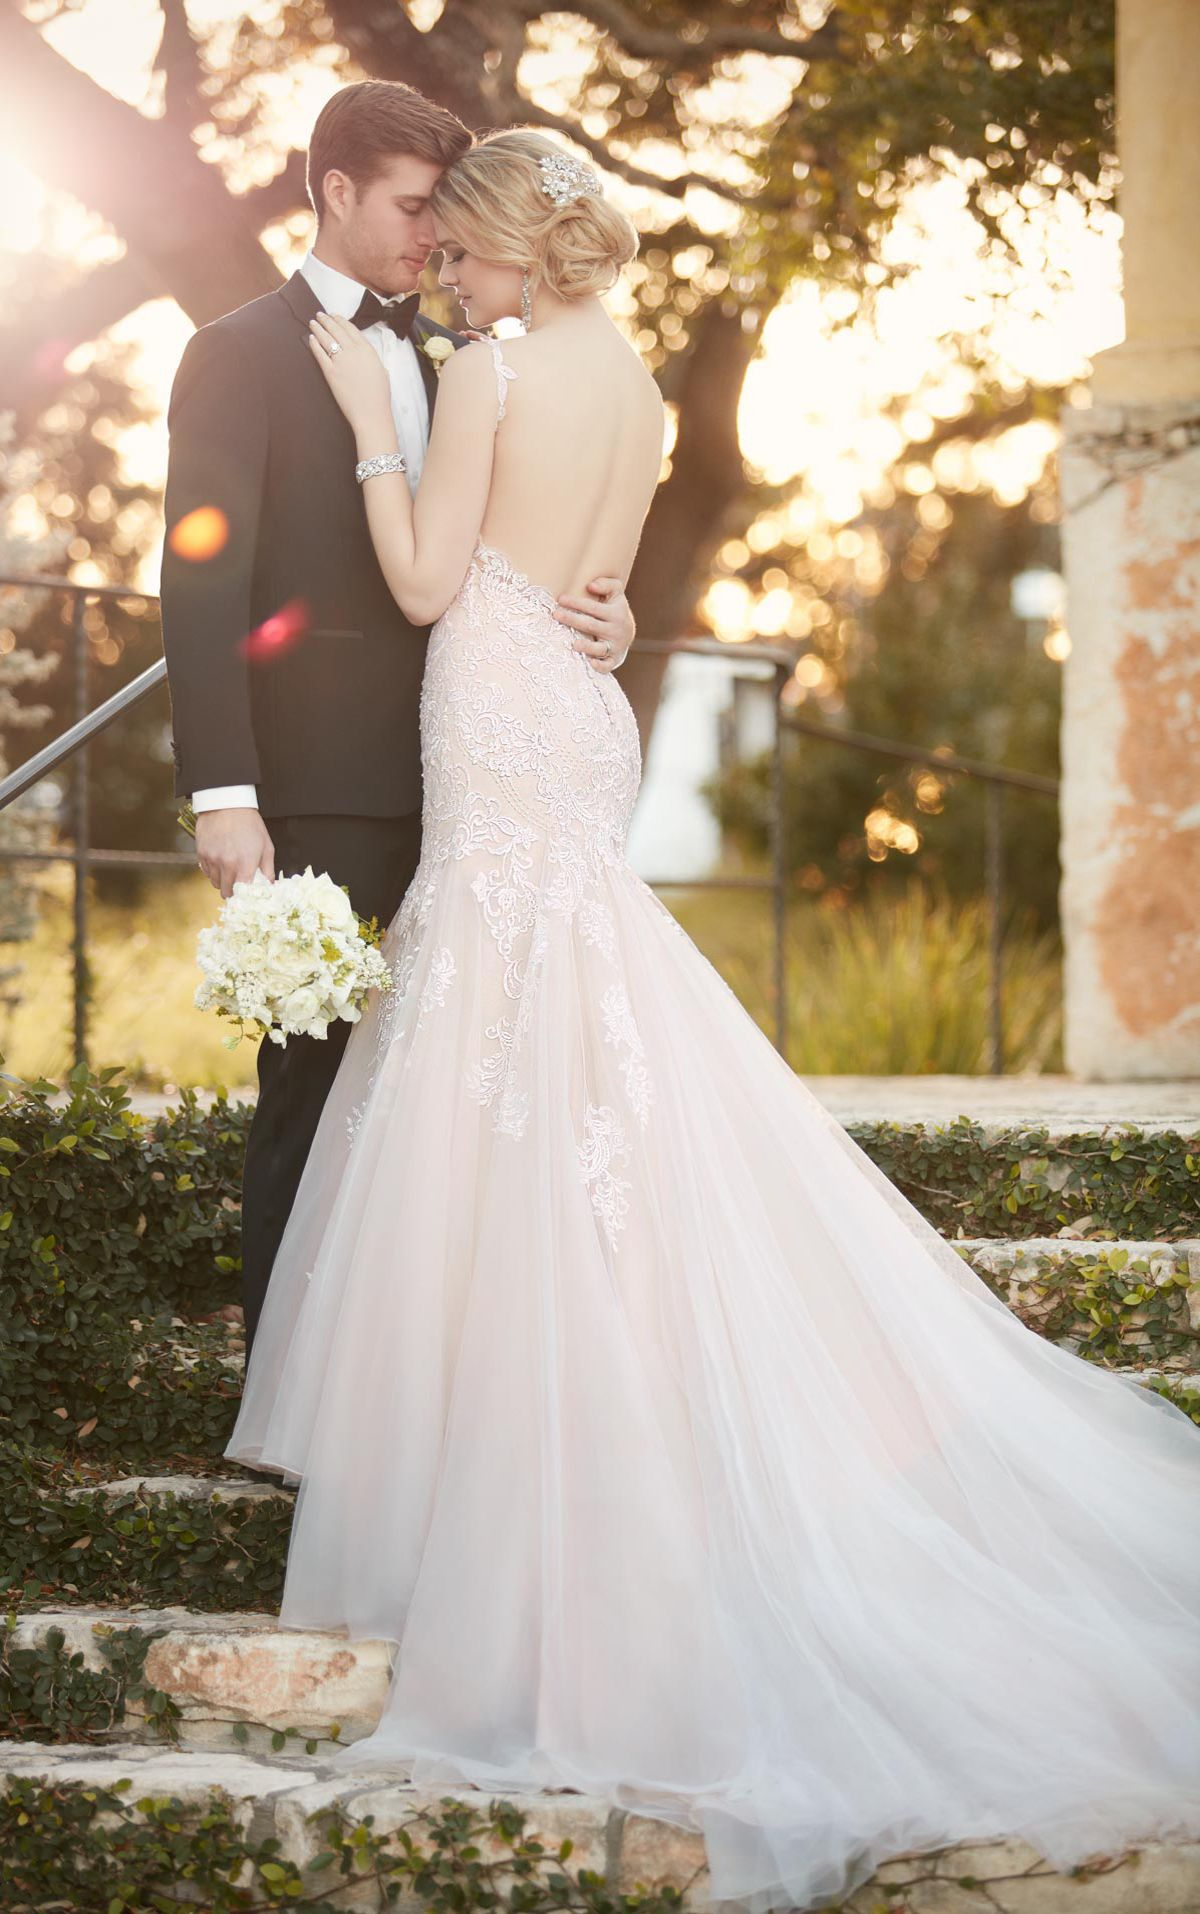 Low cut wedding dresses  Fit and flare wedding dress with lowcut back  weddings  Pinterest